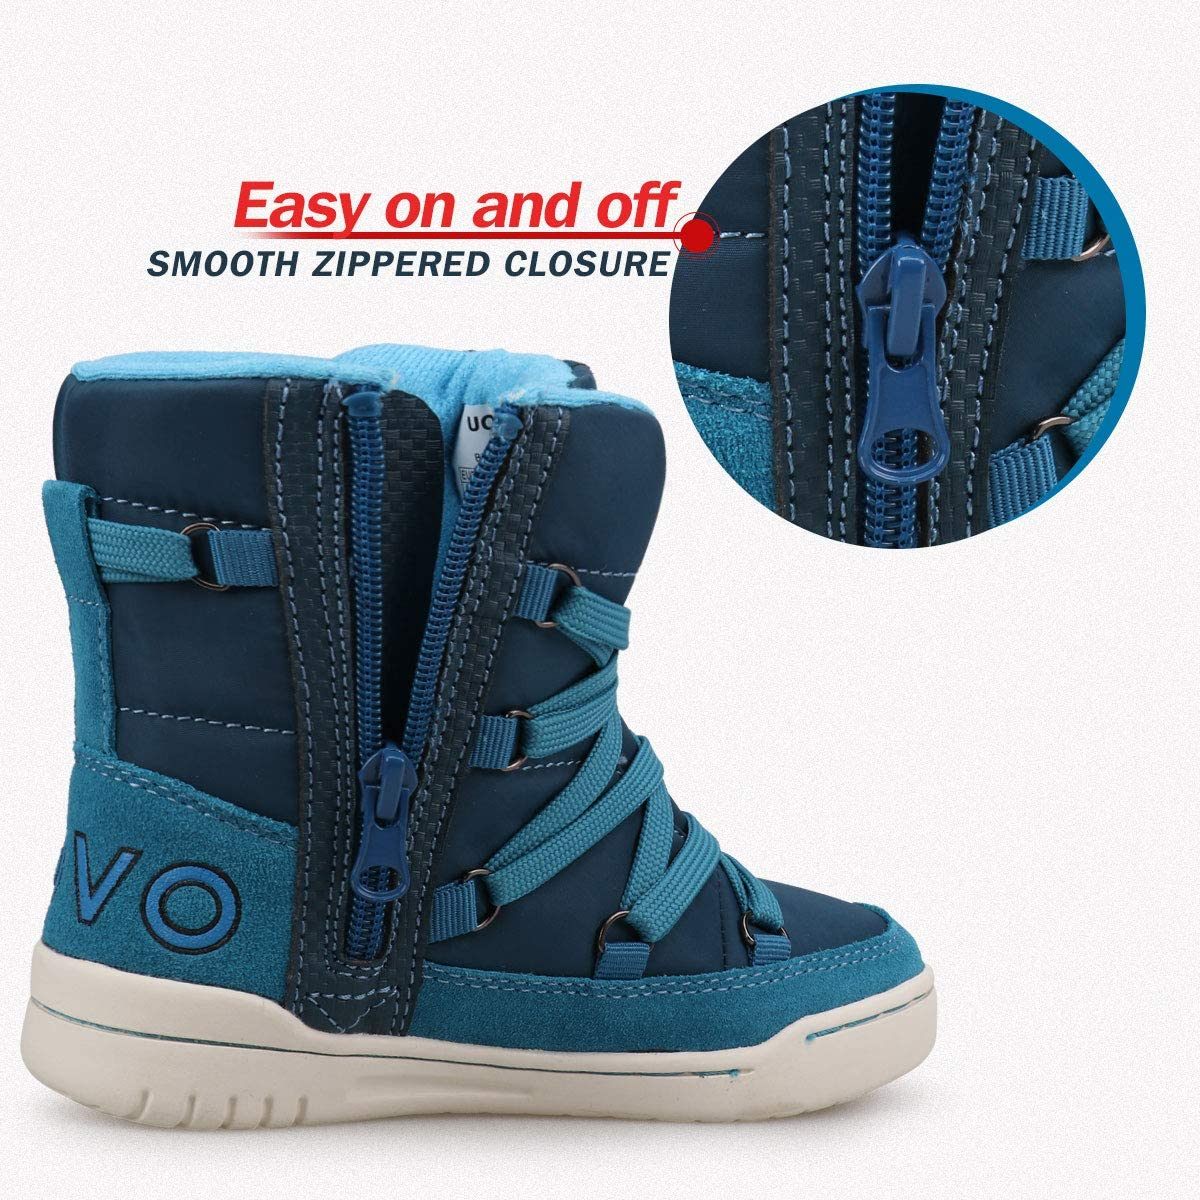 Toddler//Little Boys Boys Snow Boots Boys Winter Boots for Kids Waterproof Winter Snow Boots for Boys Warm Fur Lined Slip Resistant Outdoor